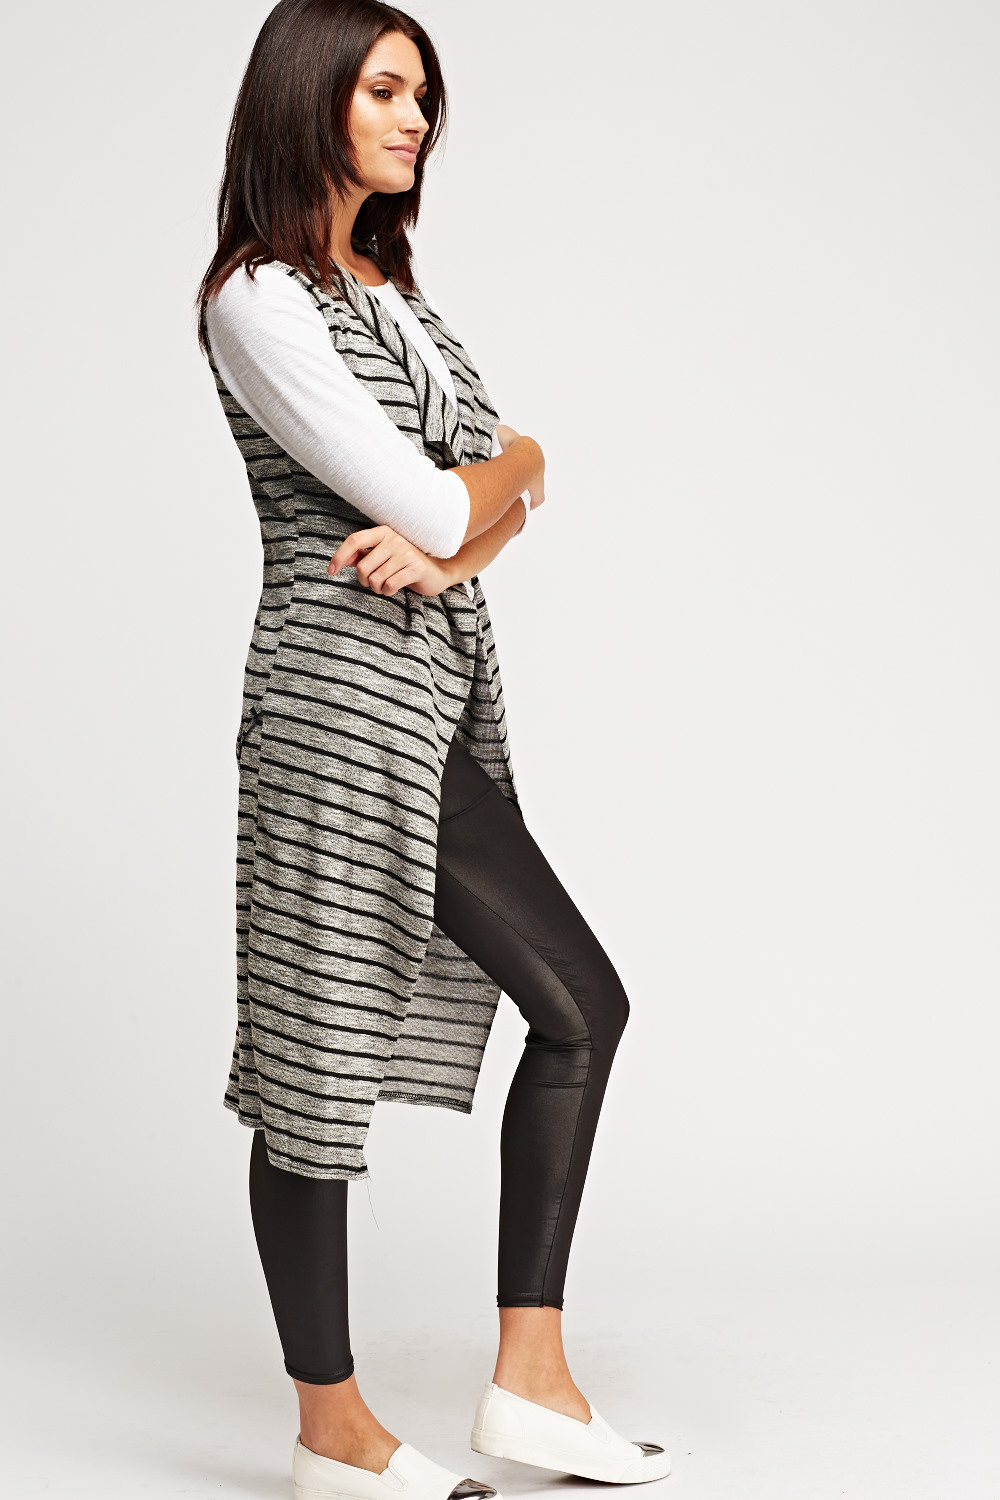 Thin Knitted Striped Longline Cardigan - Grey/Black - Just £5